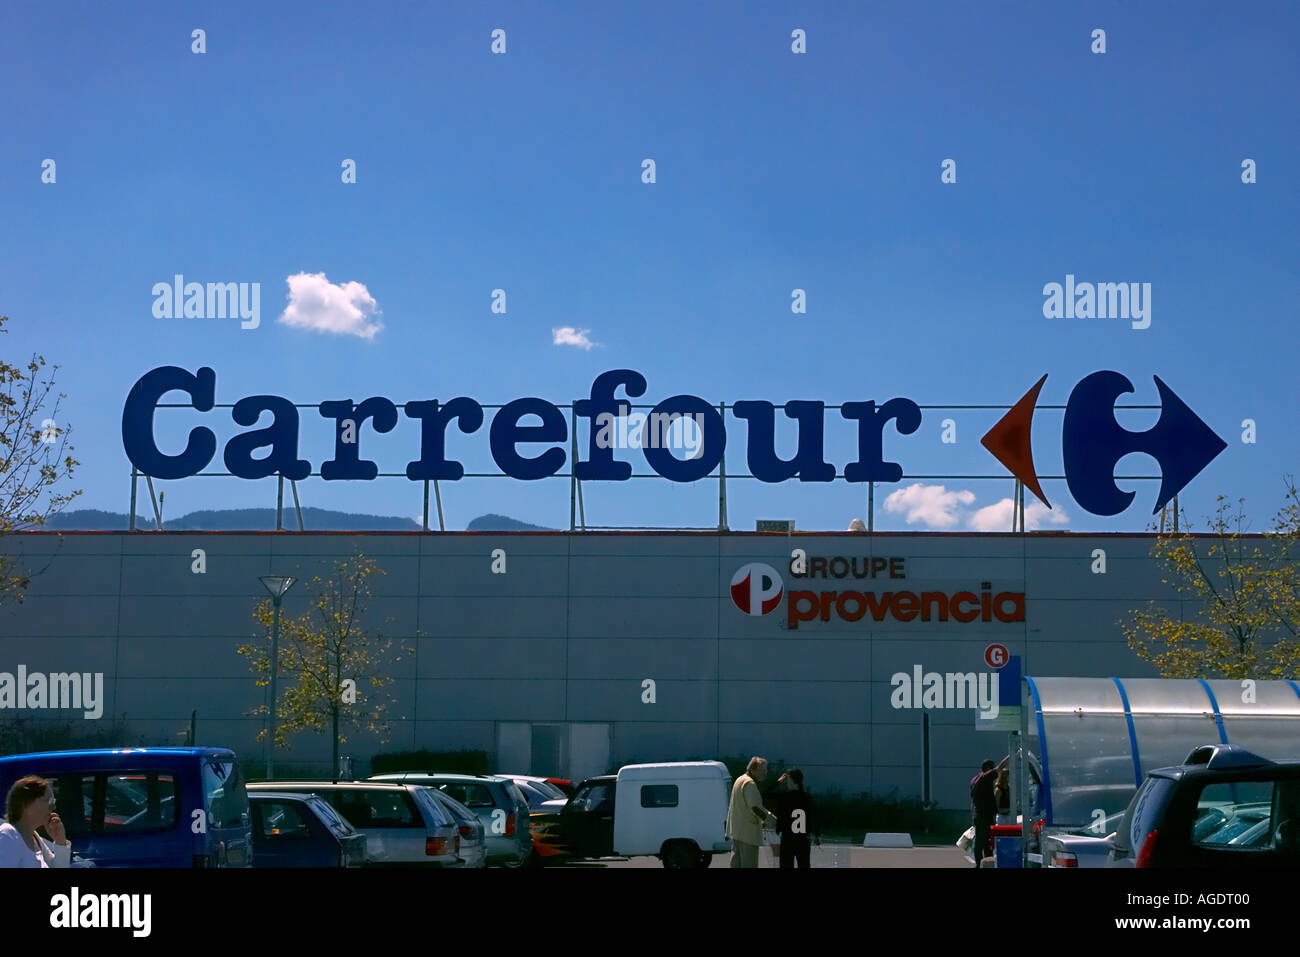 carrefour supermarket signage in thonon france stock photo royalty free image 4629503 alamy. Black Bedroom Furniture Sets. Home Design Ideas